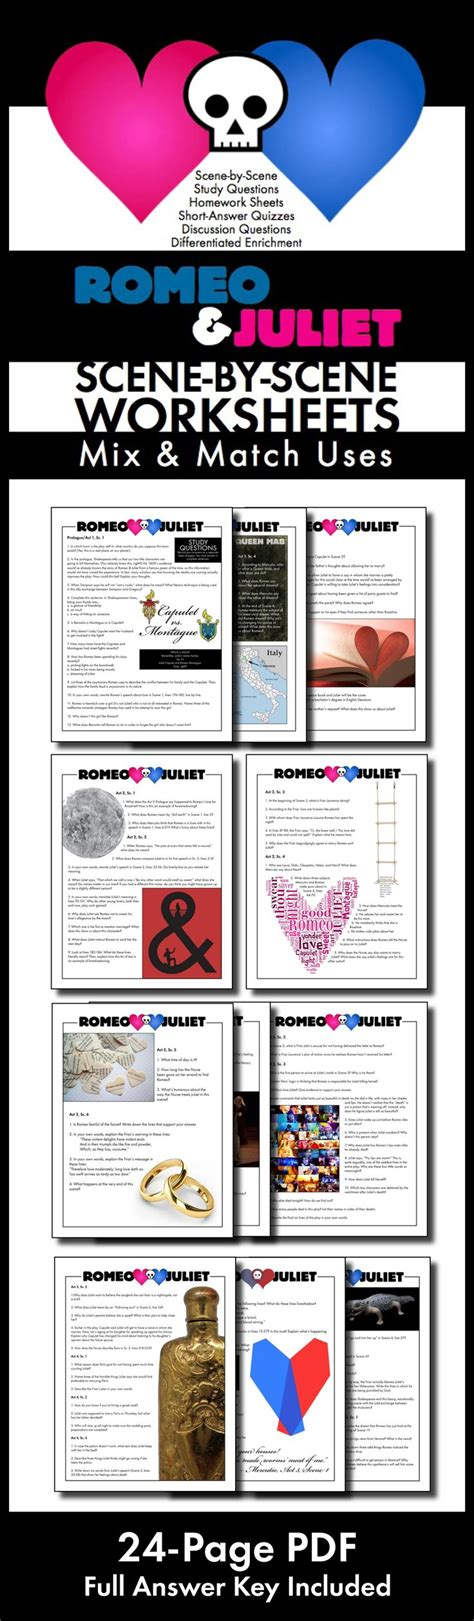 themes in romeo and juliet graphic organizer les 149 meilleures images du tableau romeo and juliet sur